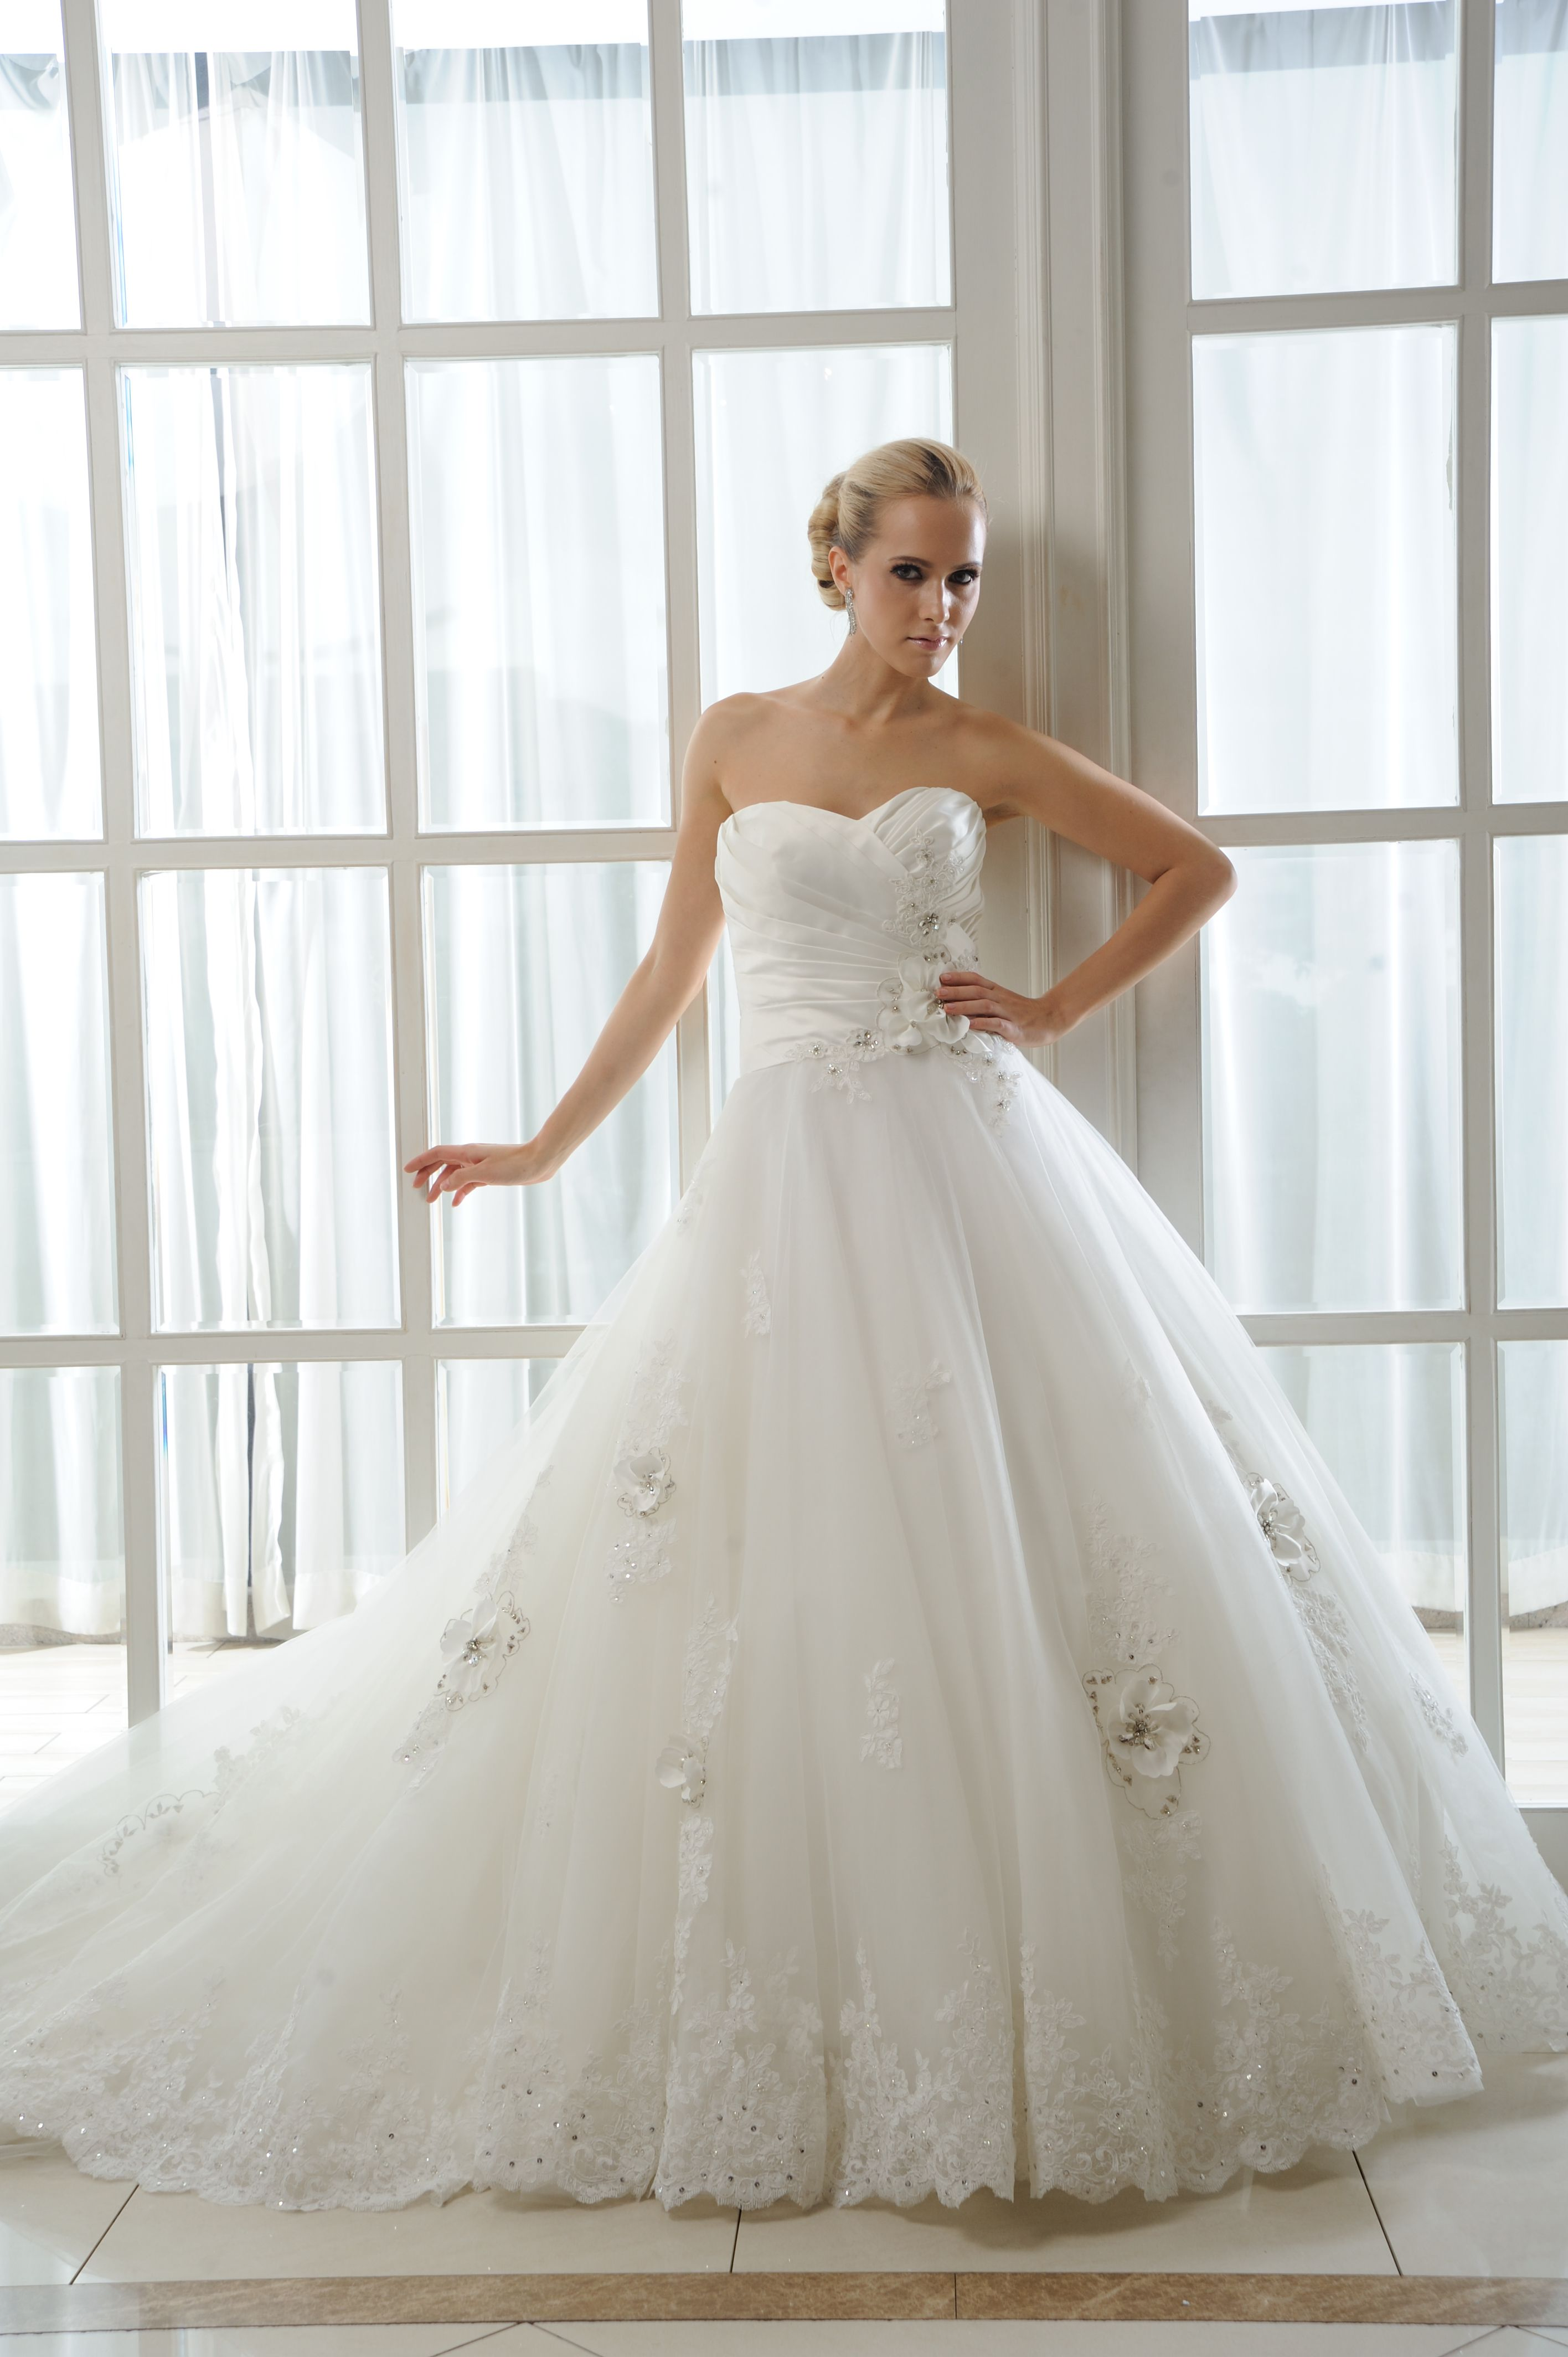 Destiny - Brides by Harvee lace and tulle floral wedding dress ...